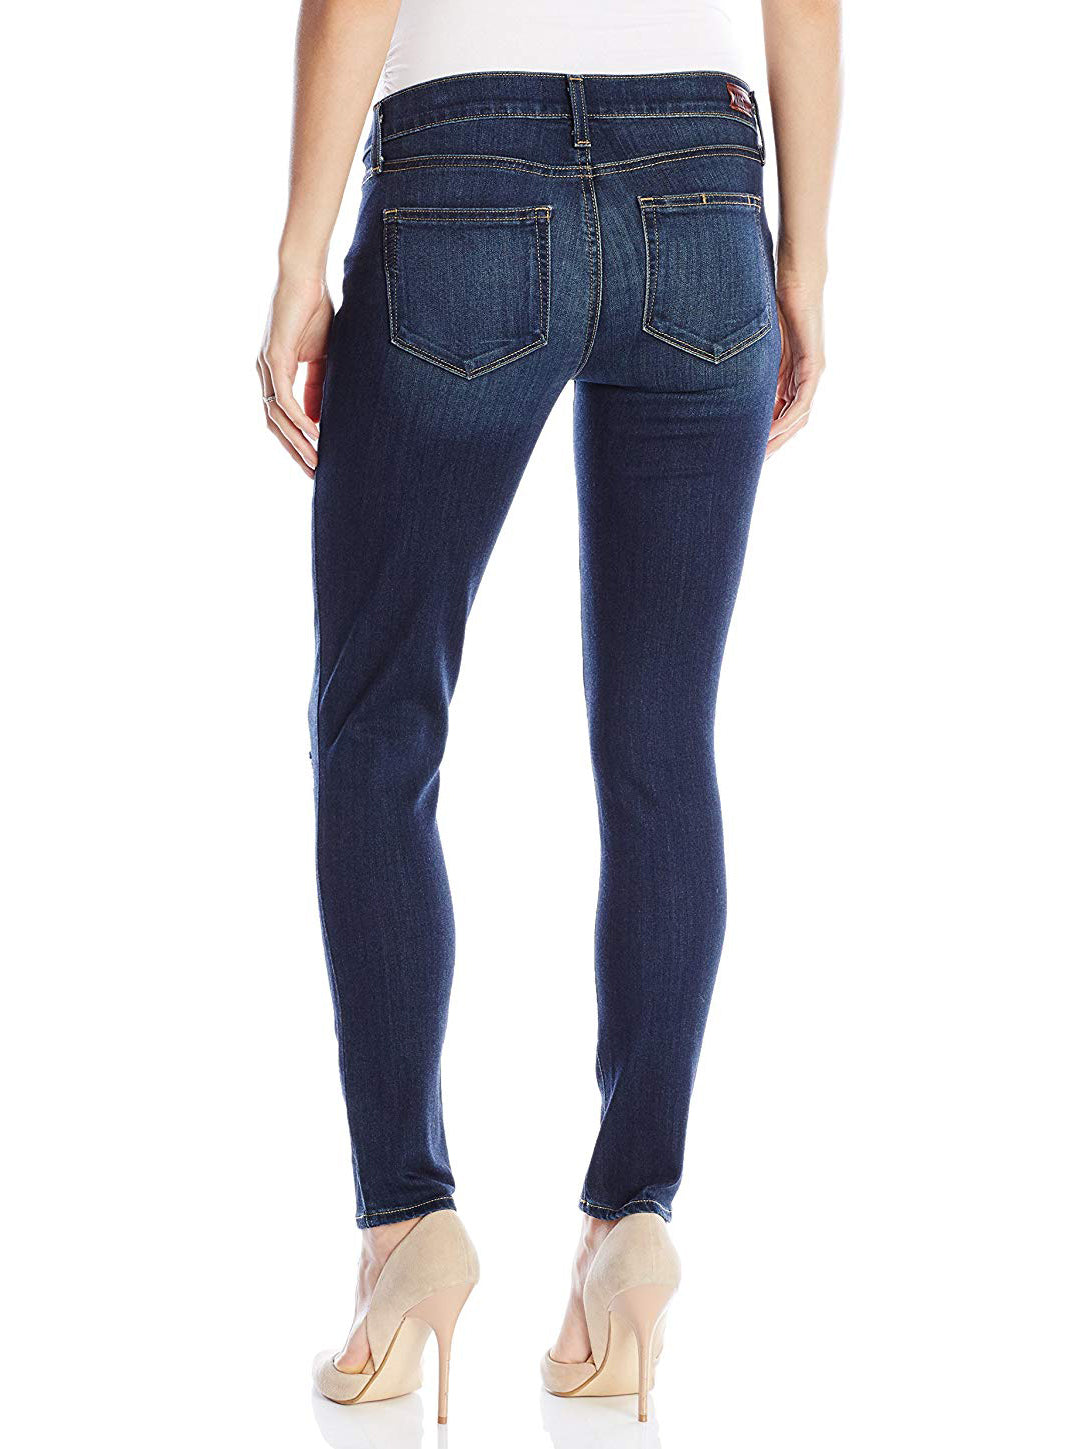 Paige Verdugo Maternity Skinny Jeans Nia Destructed Dark Wash | TILDEN